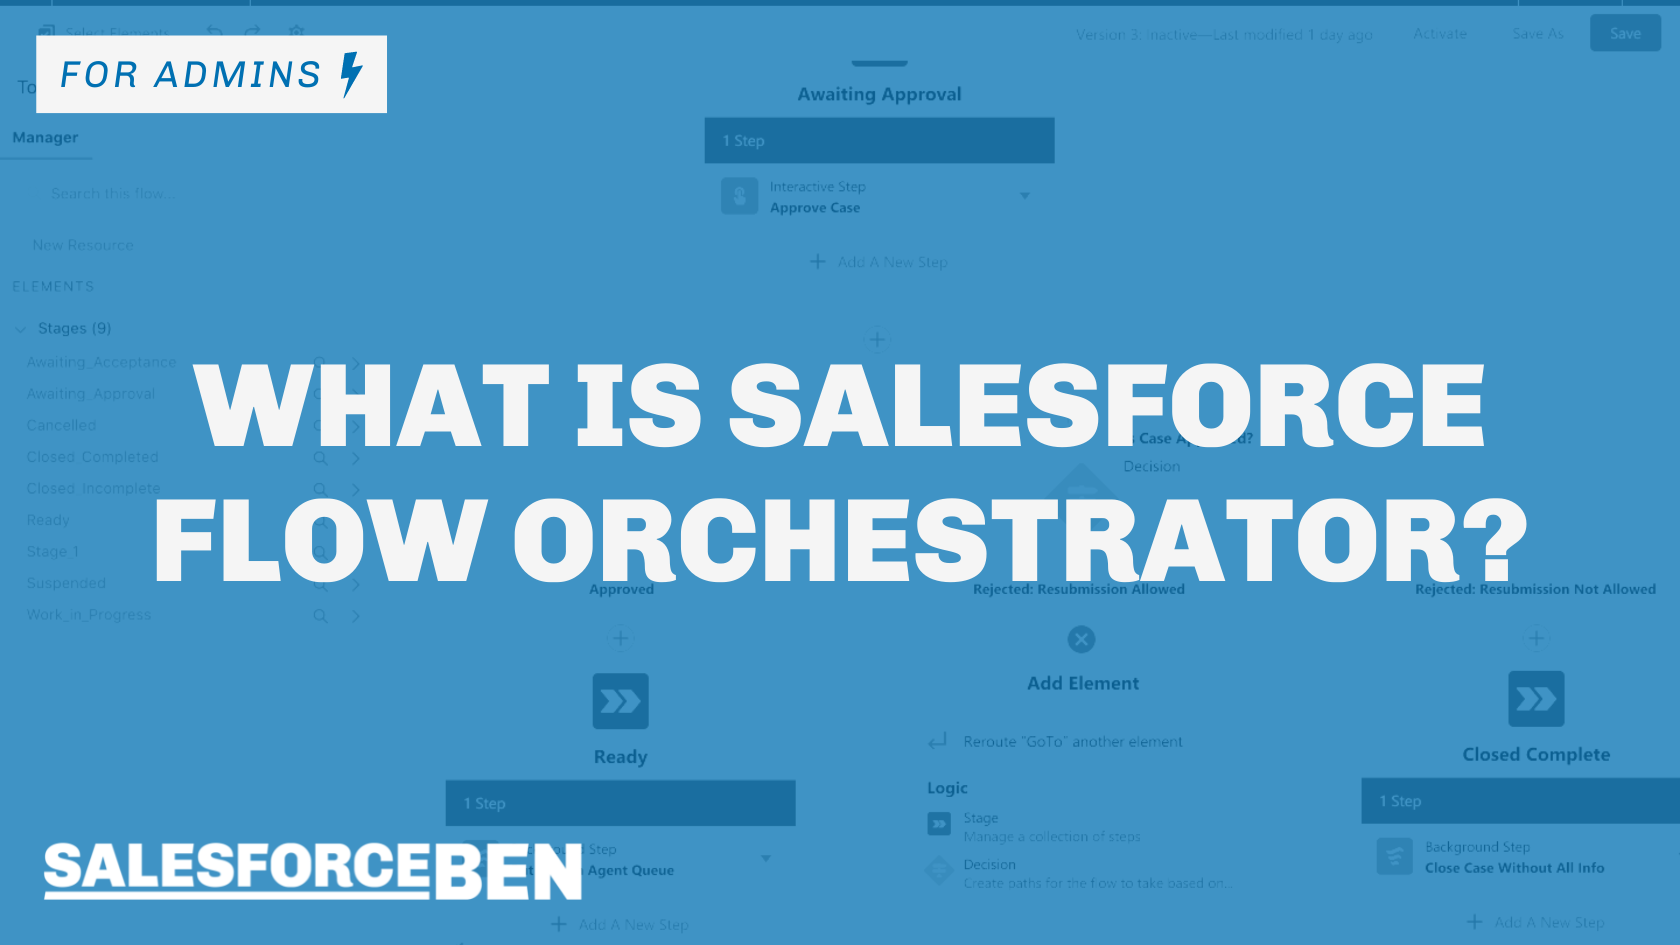 What is Salesforce Flow Orchestrator?